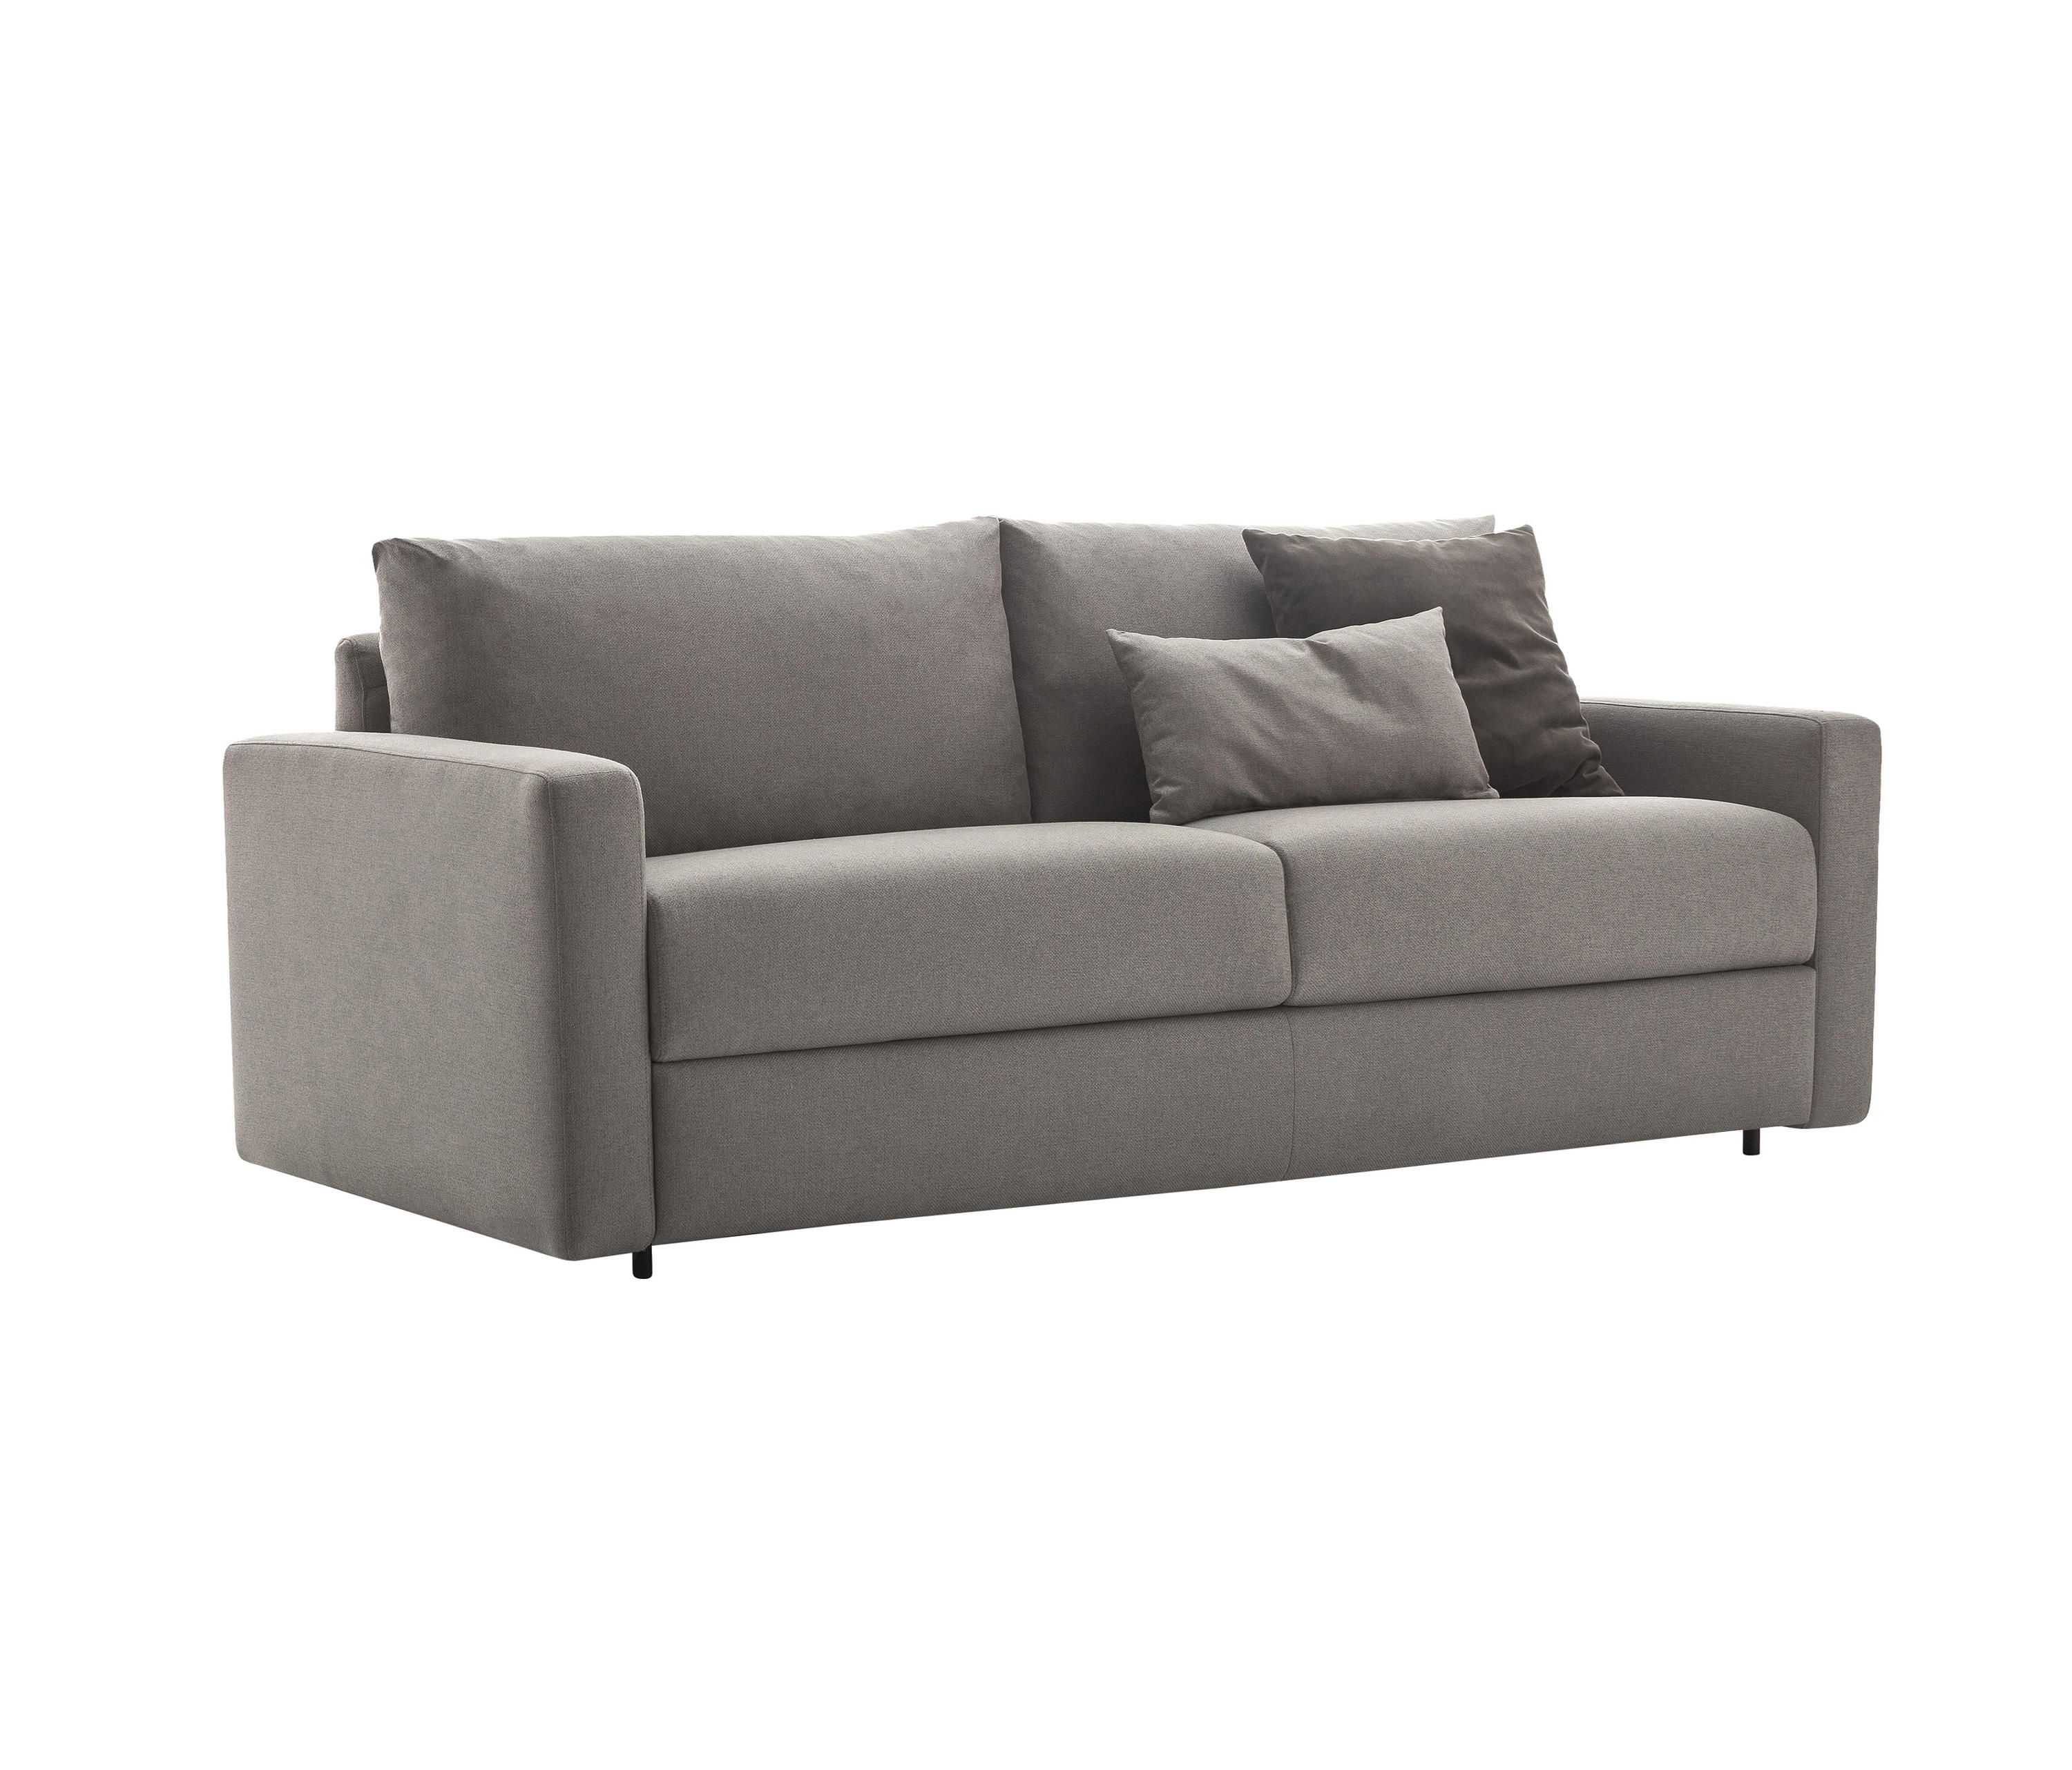 Freedom sofa beds from ditre italia architonic for Sofa bed freedom